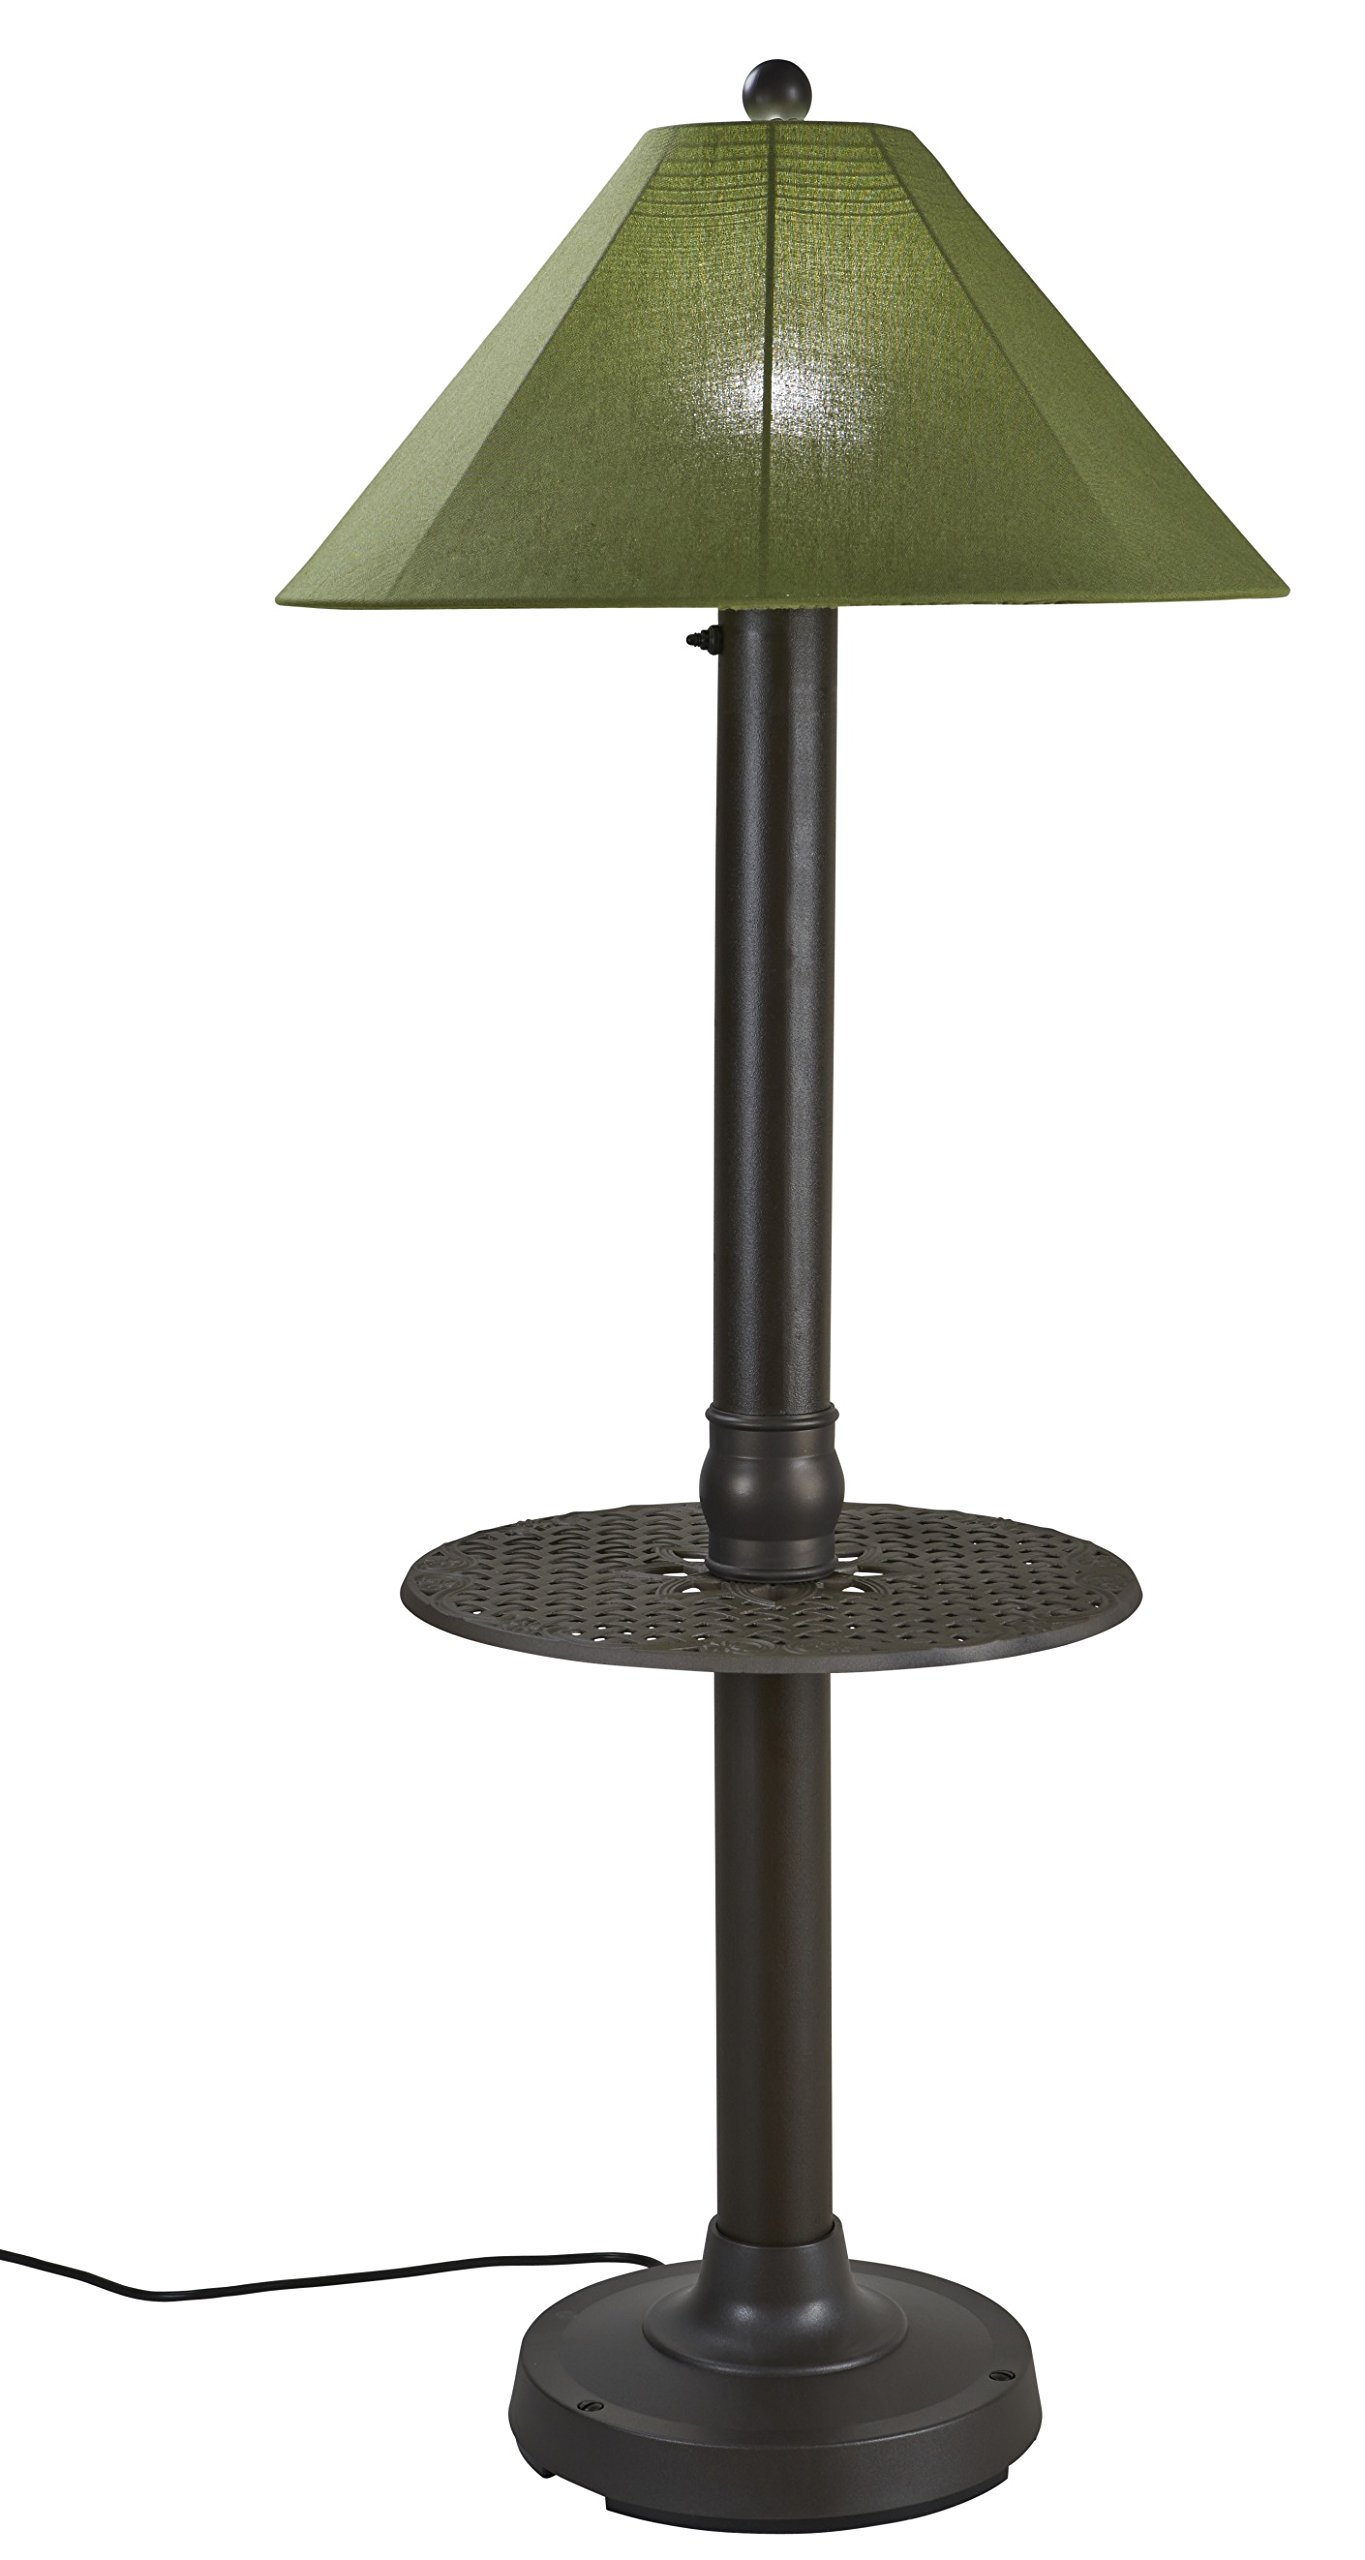 Patio Living Concepts 65697 Catalina Outdoor Floor Lamp with Table by Patio Living Concepts